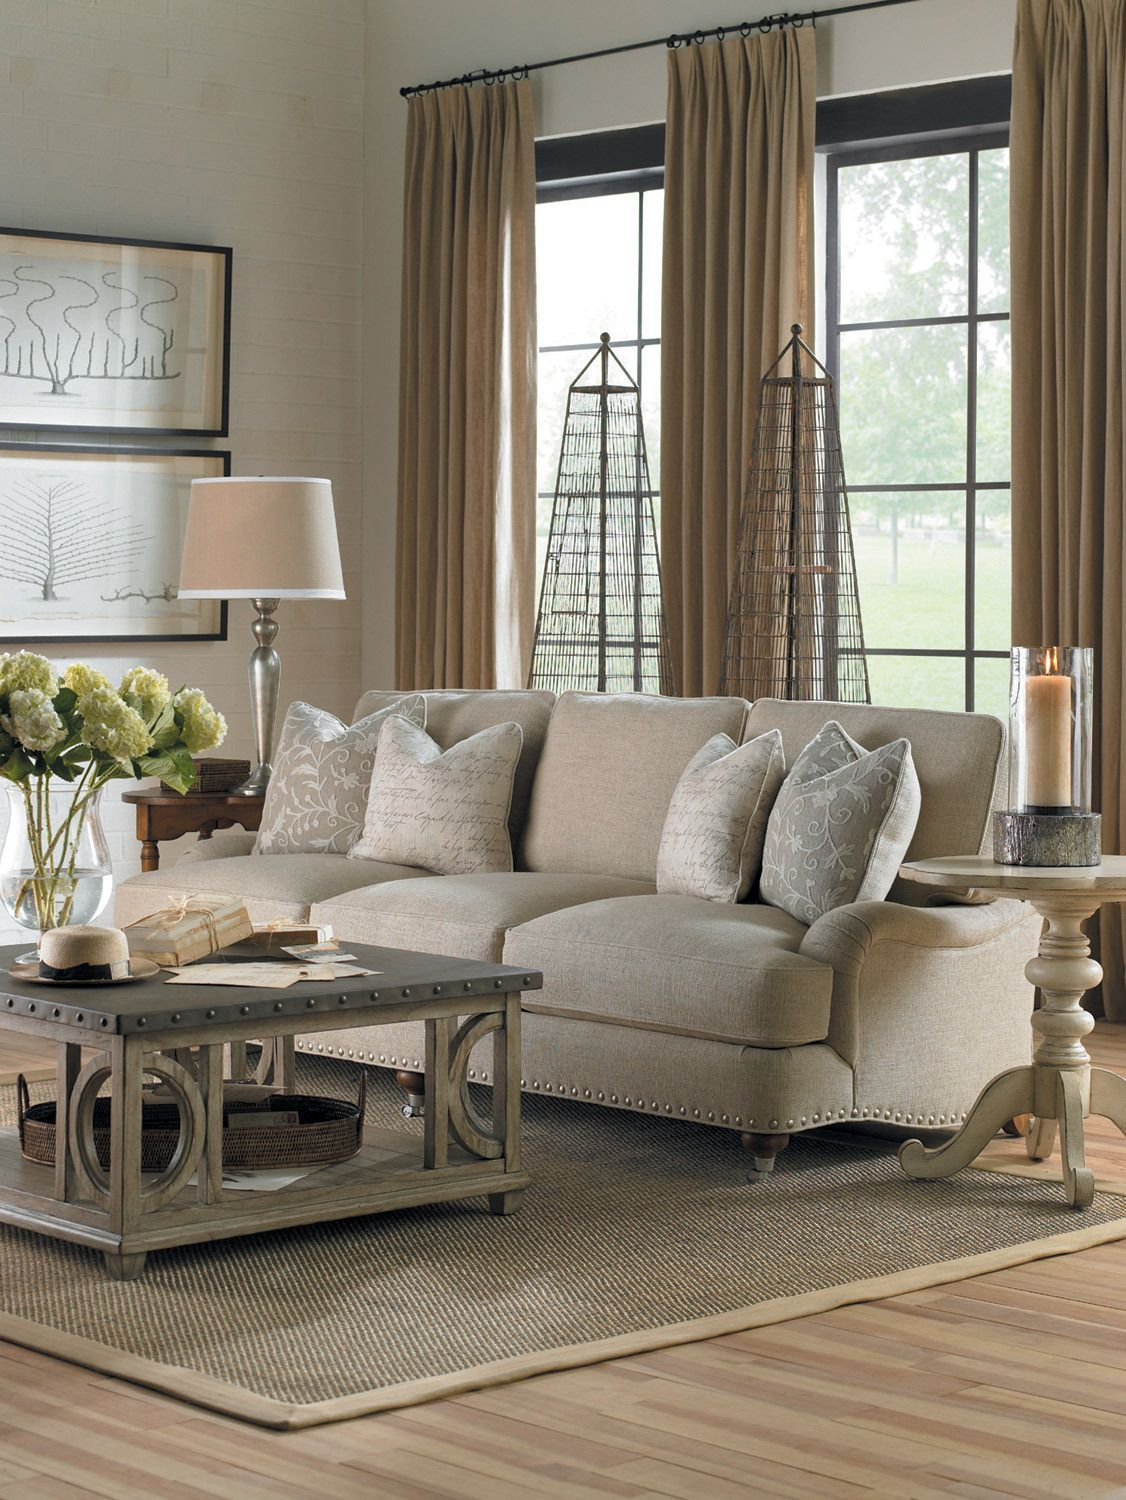 Twilight Bay Carley Sofa Lexington Furniture Home Gallery Stores